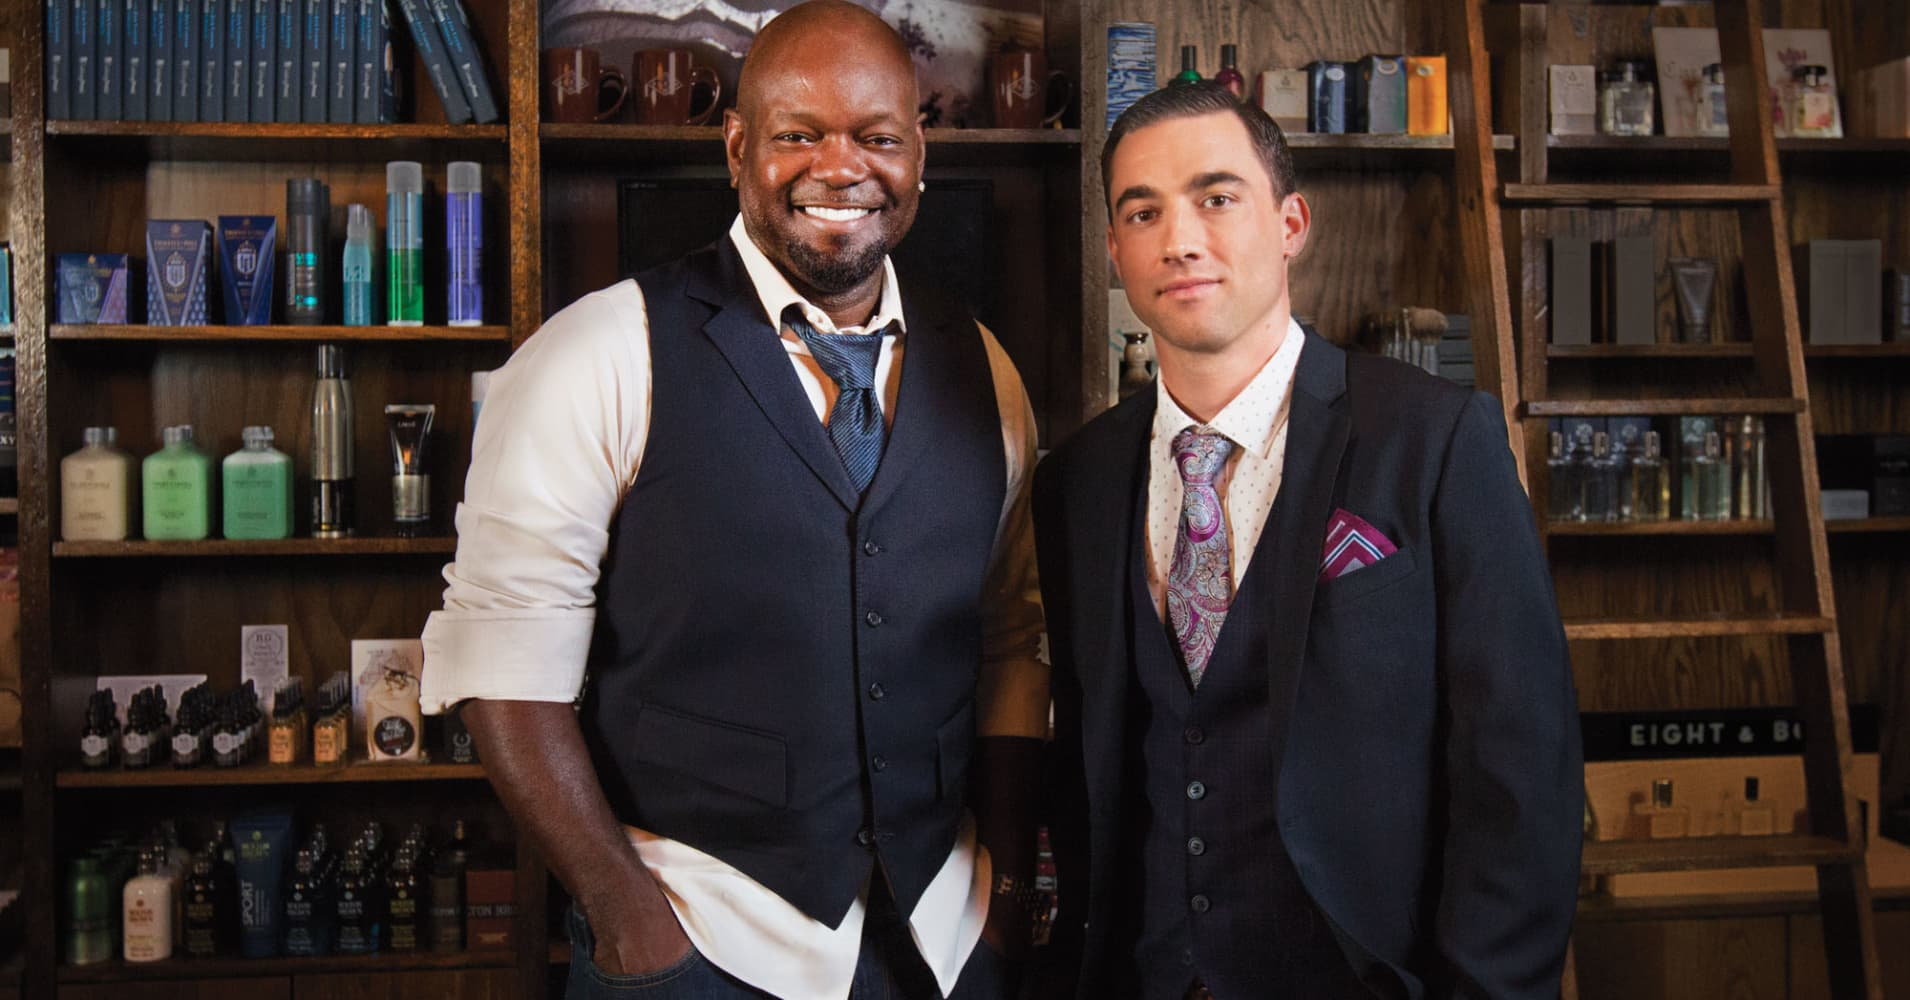 Emmitt Smith will serve as co-owner of The Gents Place alongside President Ben Davis